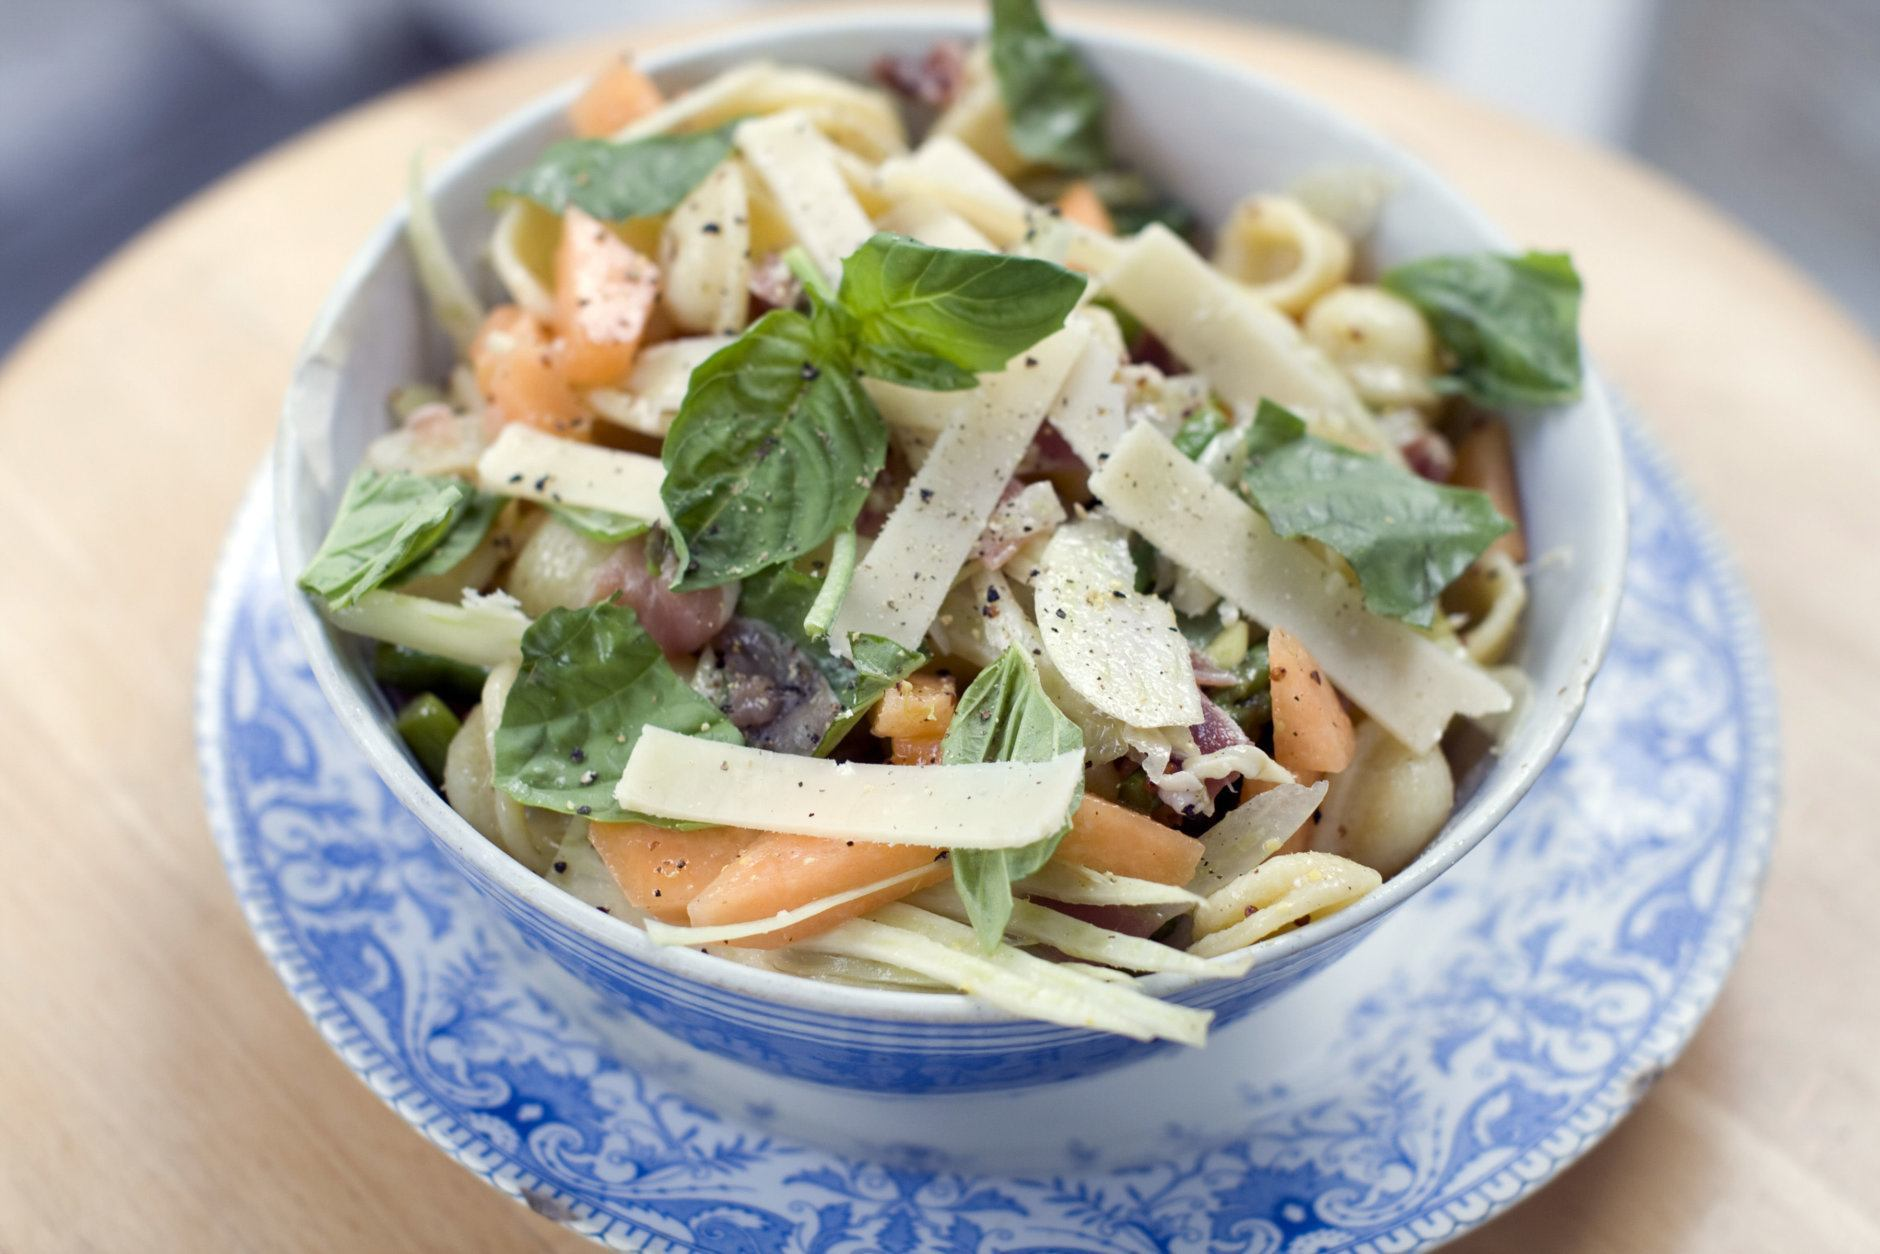 This July 29, 2013 photo shows prosciutto, cantaloupe, and orecchiette salad in Concord, N.H. A pasta salad should be easy. It should be a just-throw-the-ingredients-in-a-bowl kind of summer food that doesn't require too much messing around. (AP Photo/Matthew Mead)